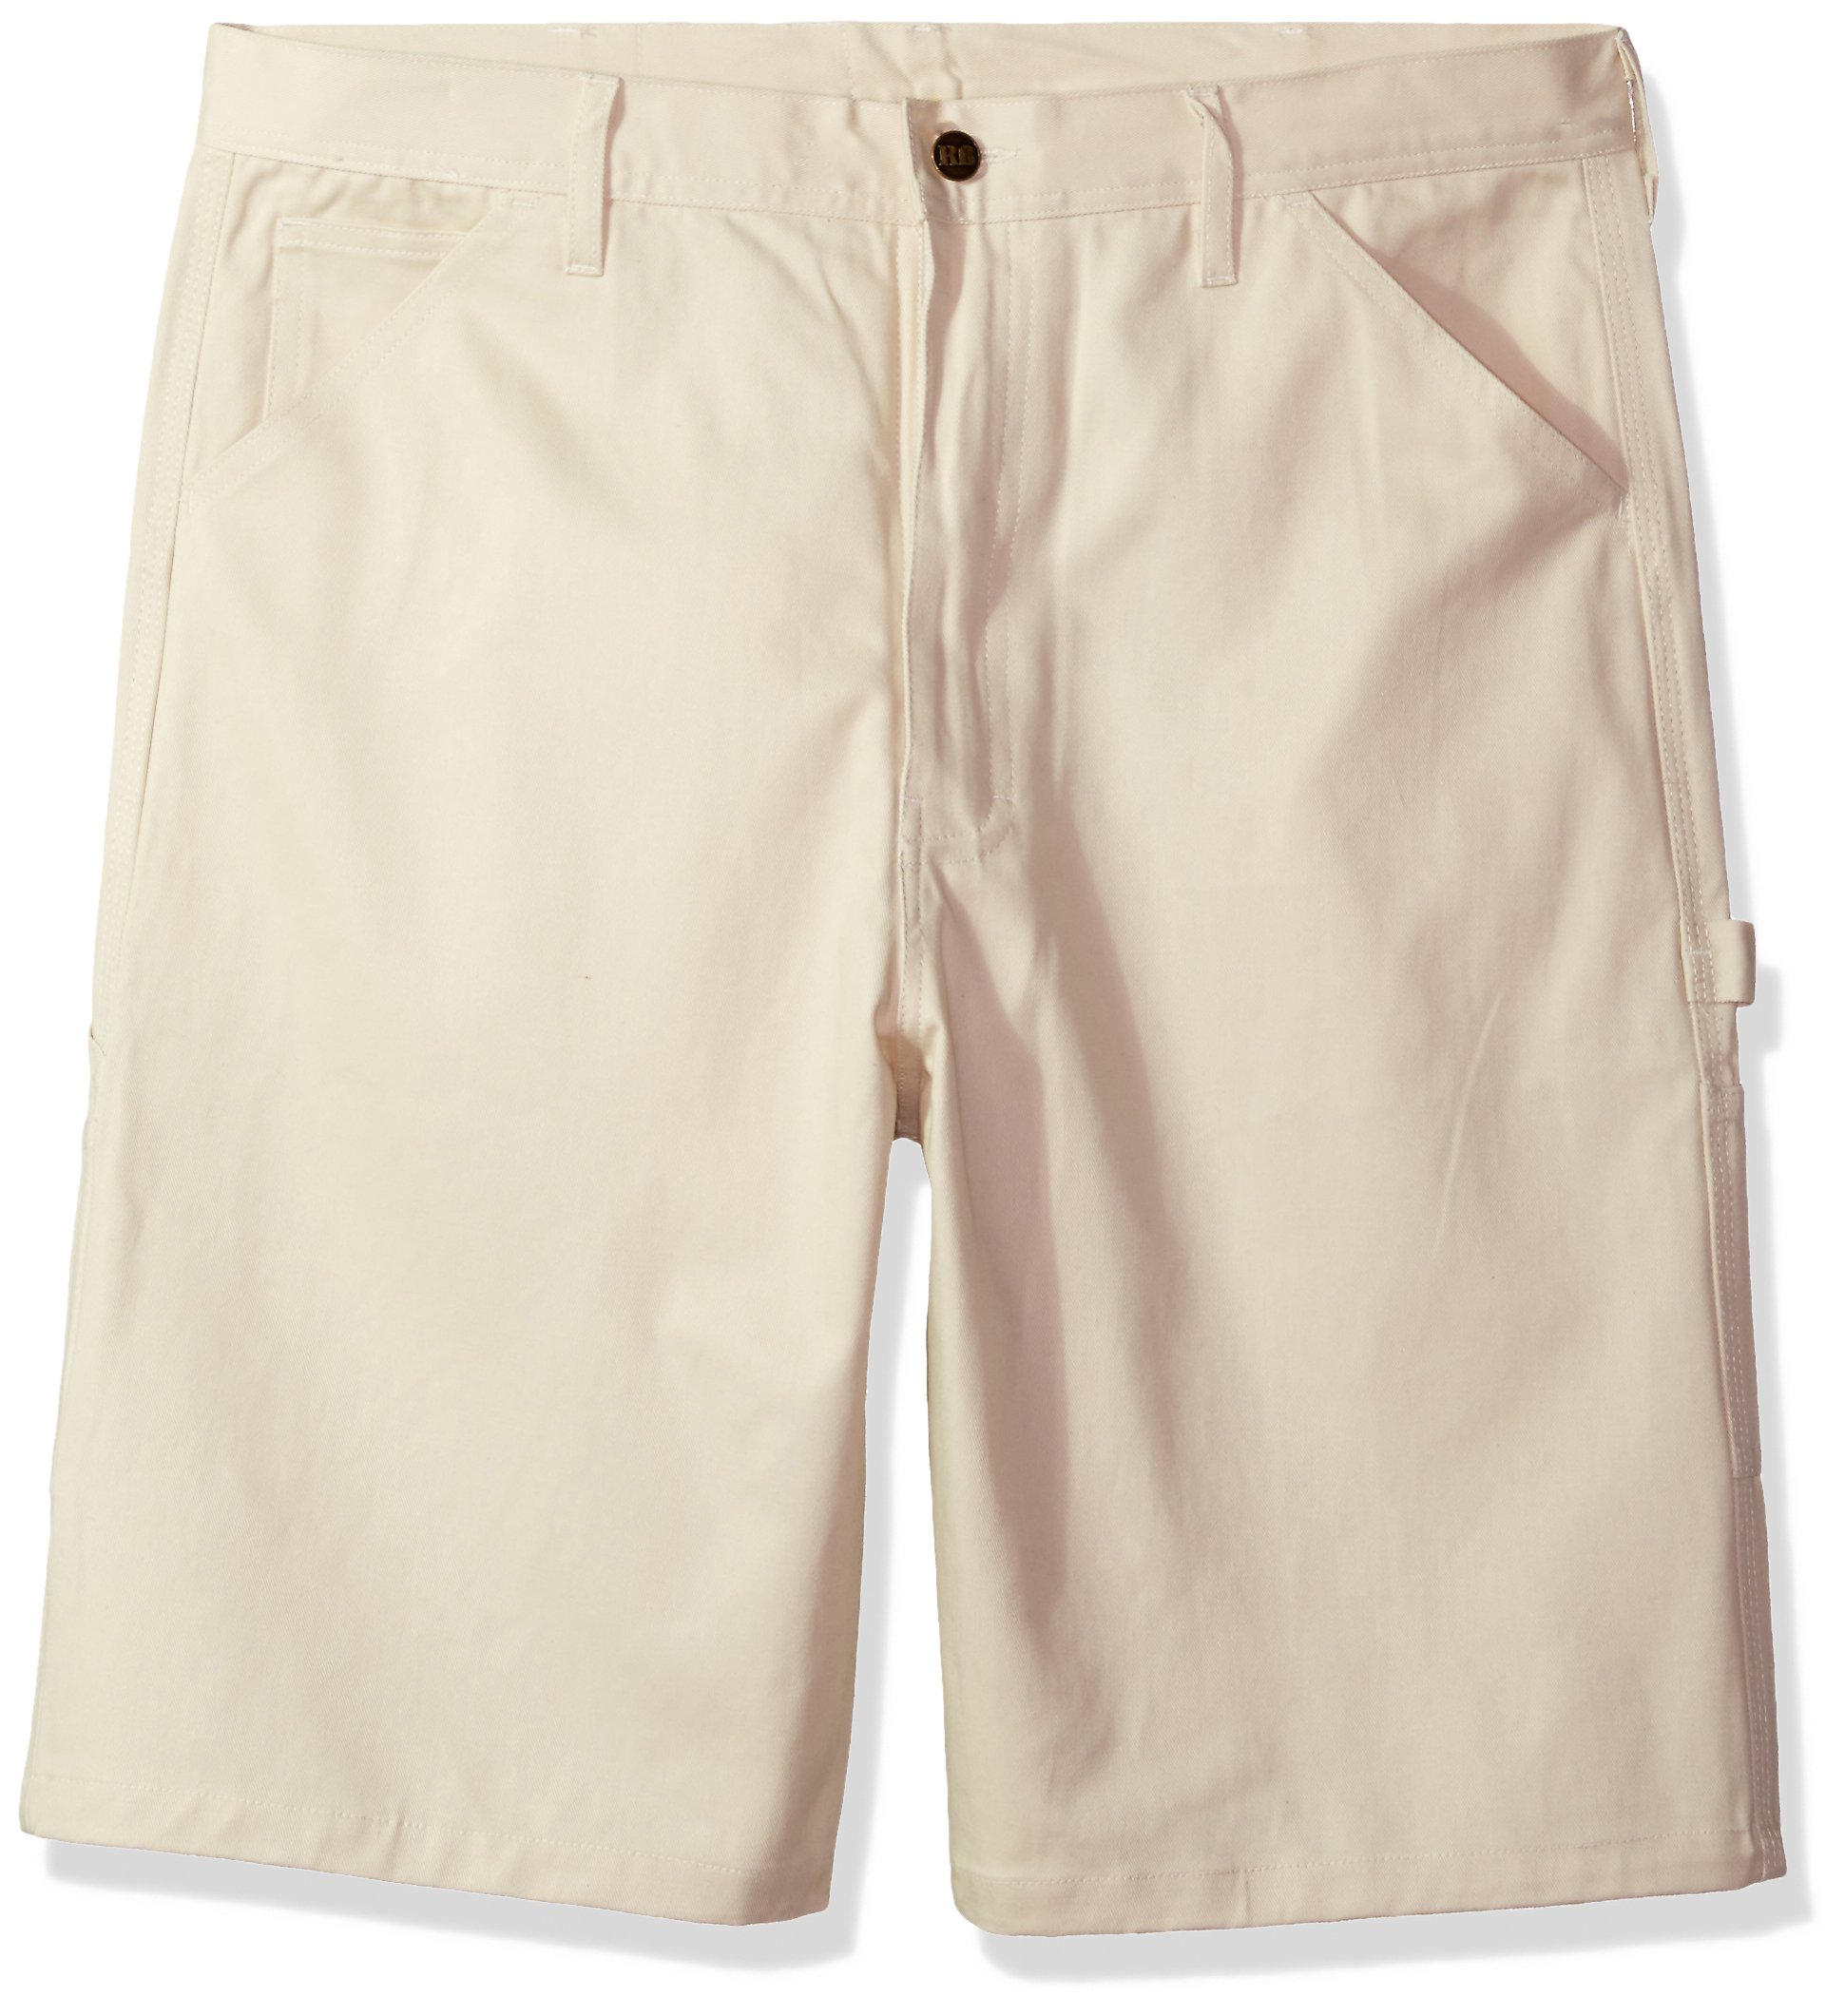 Rugged Blue RBNS34 Painters Shorts, 34'', Natural